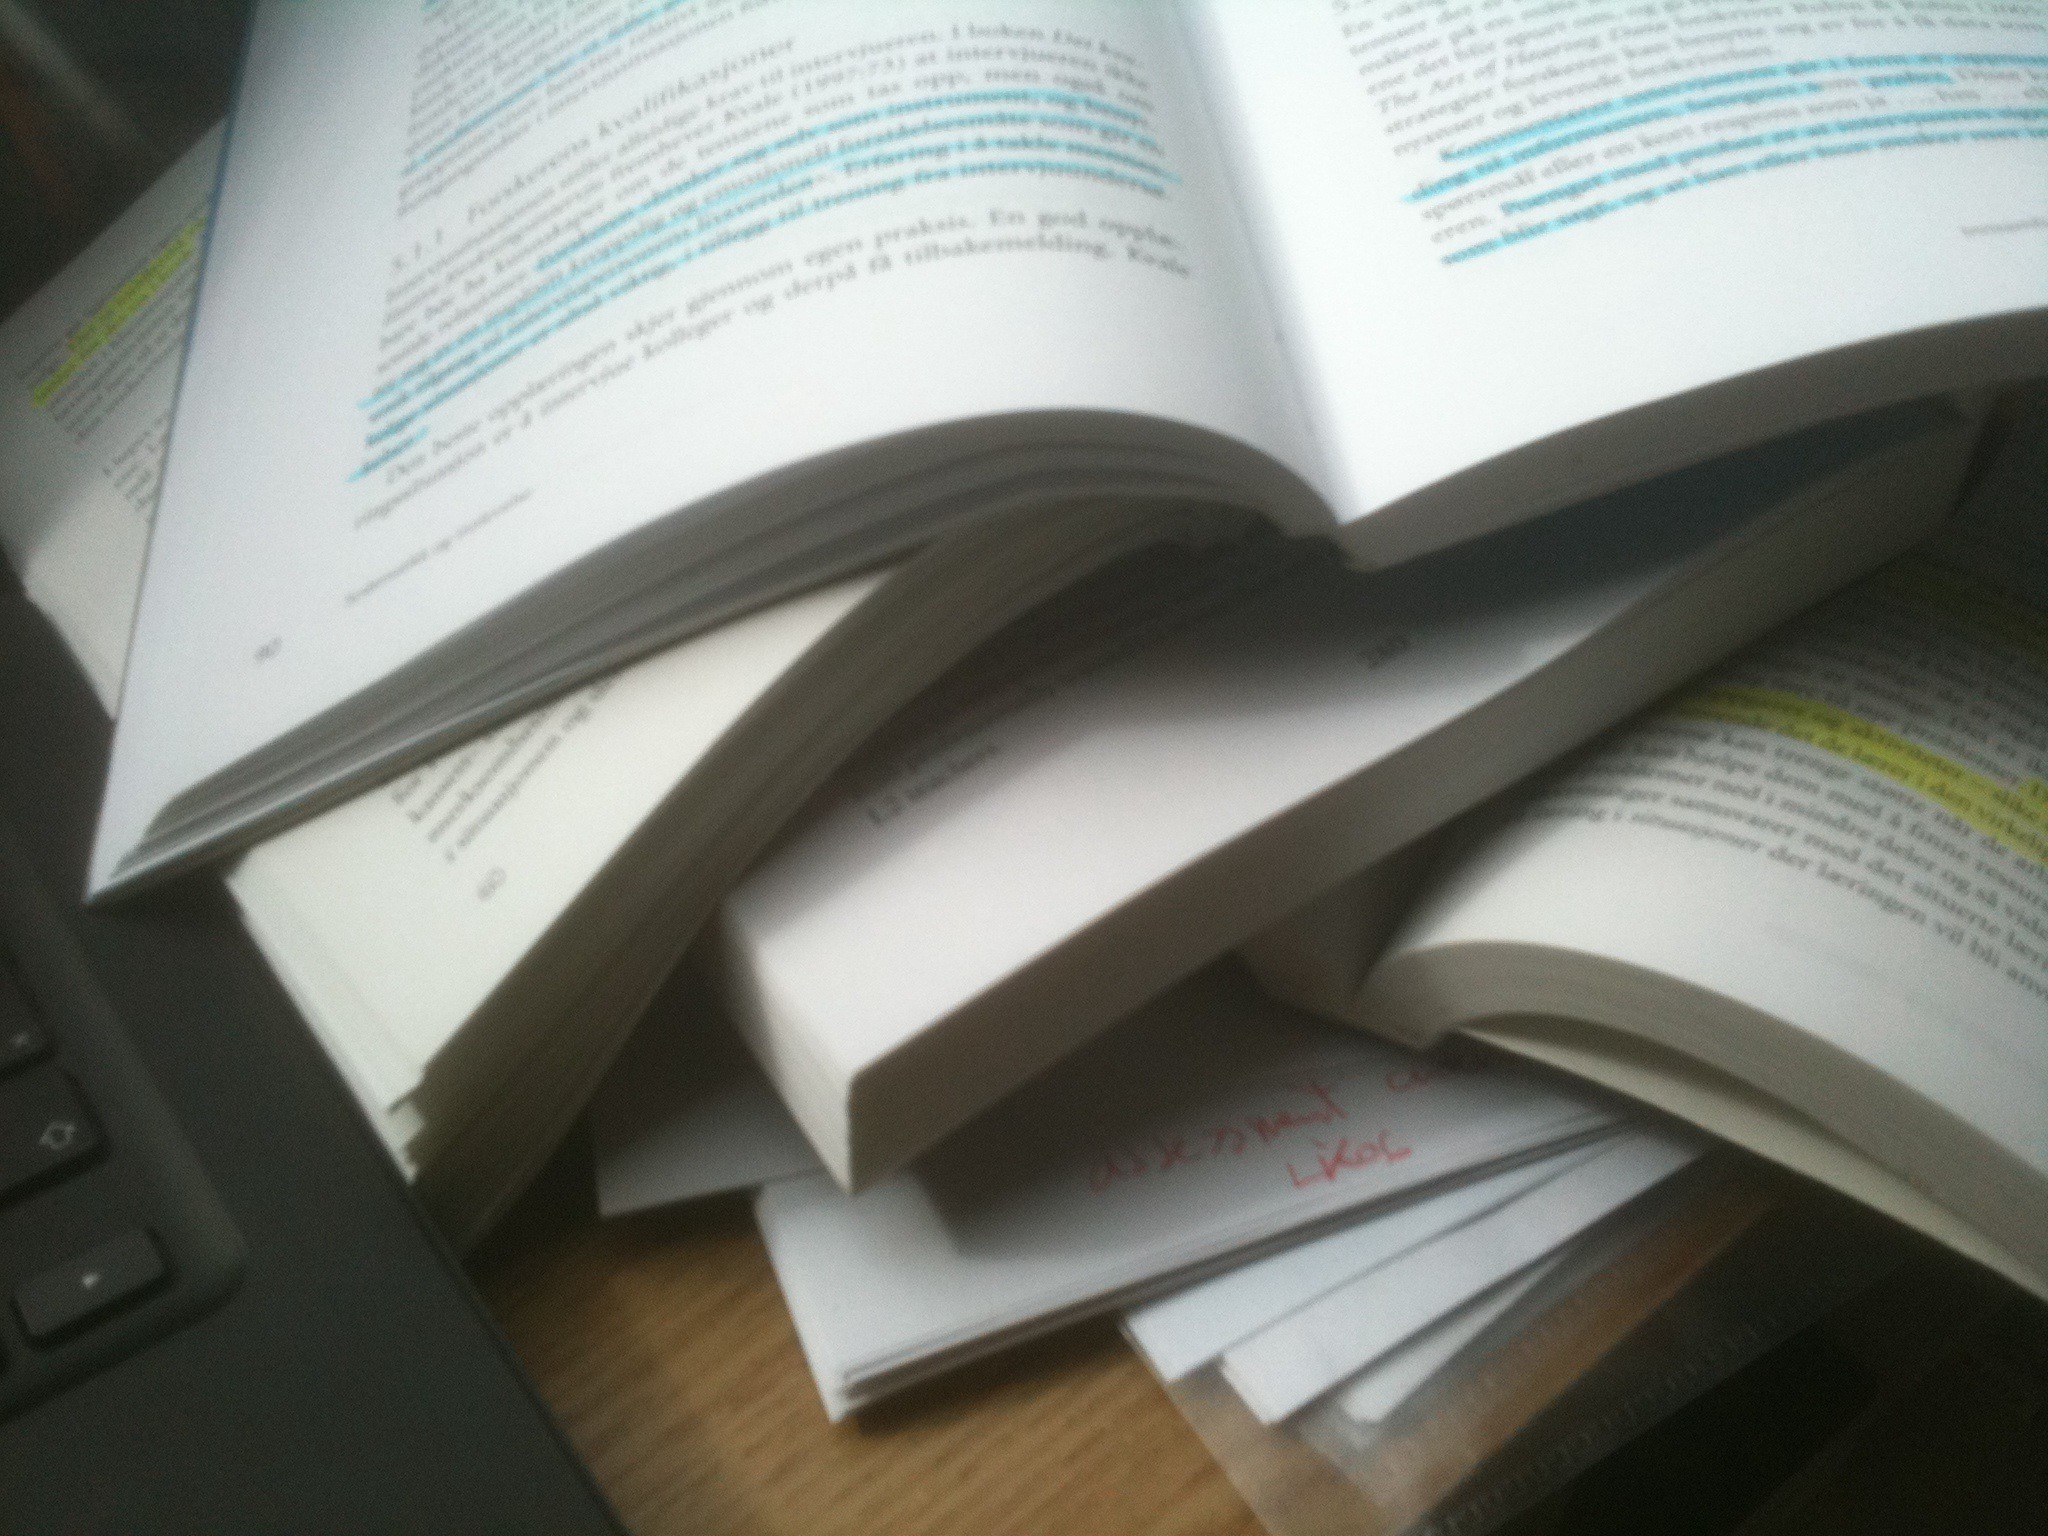 A blurry pic of a stack of opened book, sitting next to a keyboard.